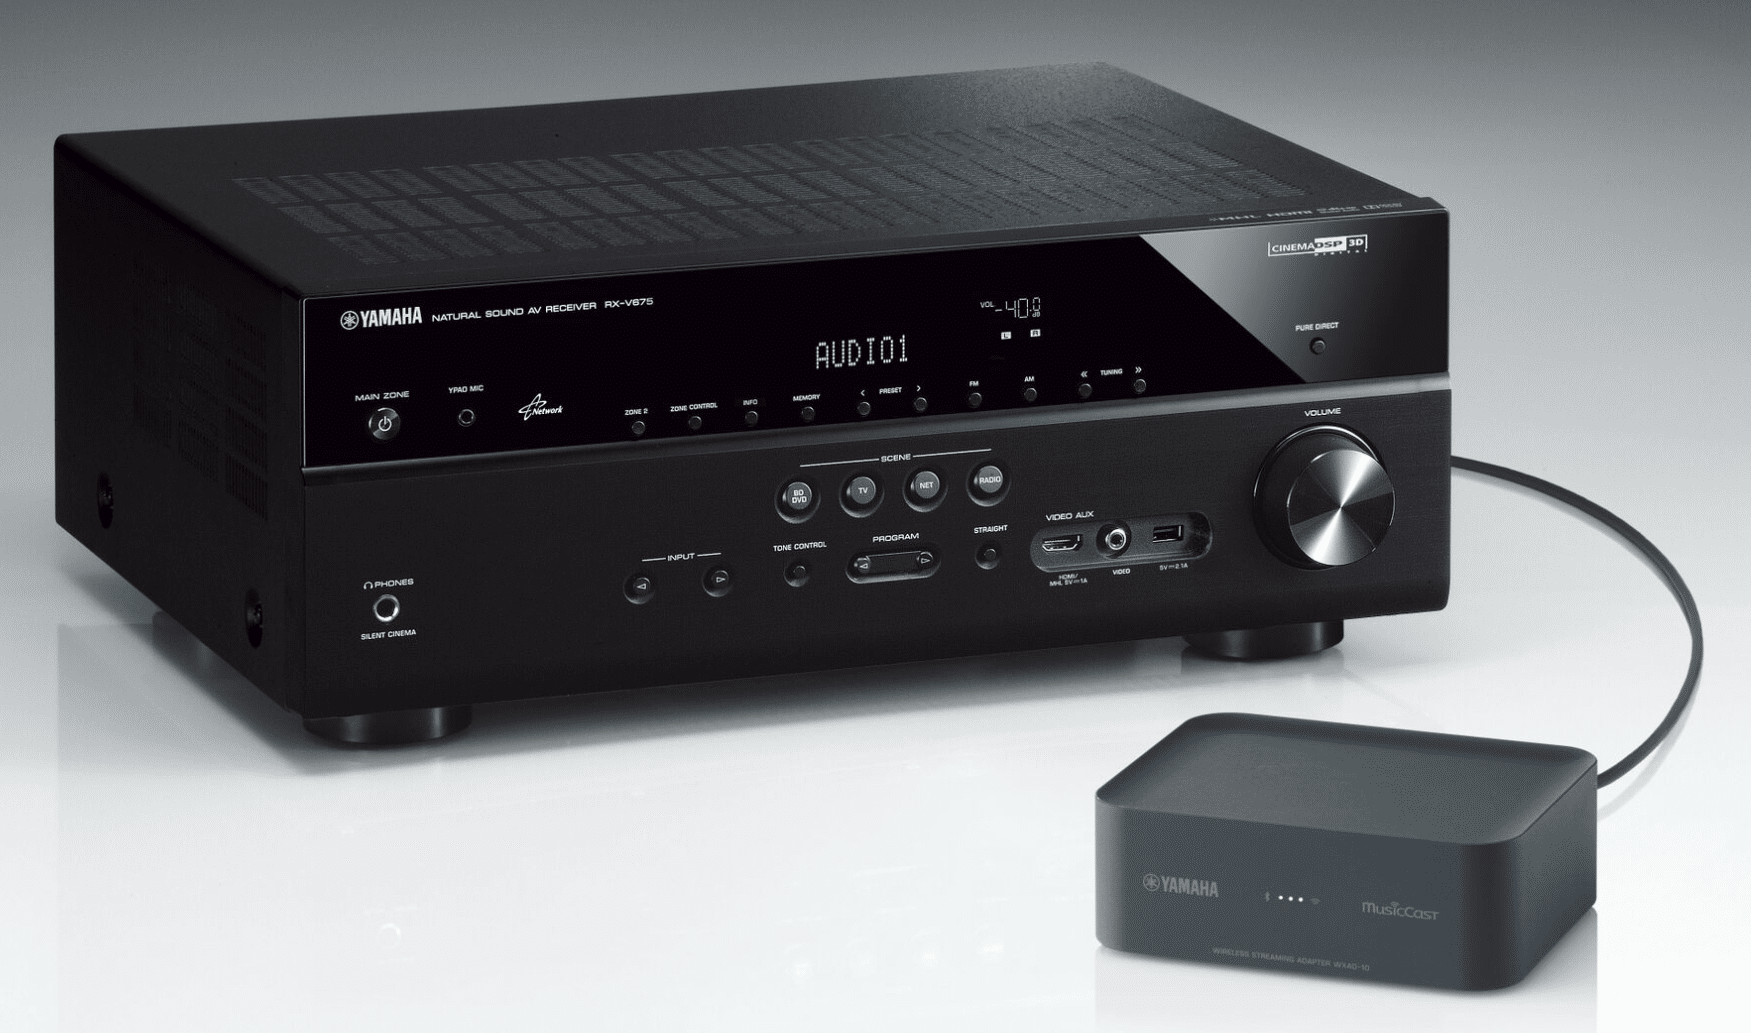 Yamaha's WXAD-10 MusicCast adapter: instantly upgrade your